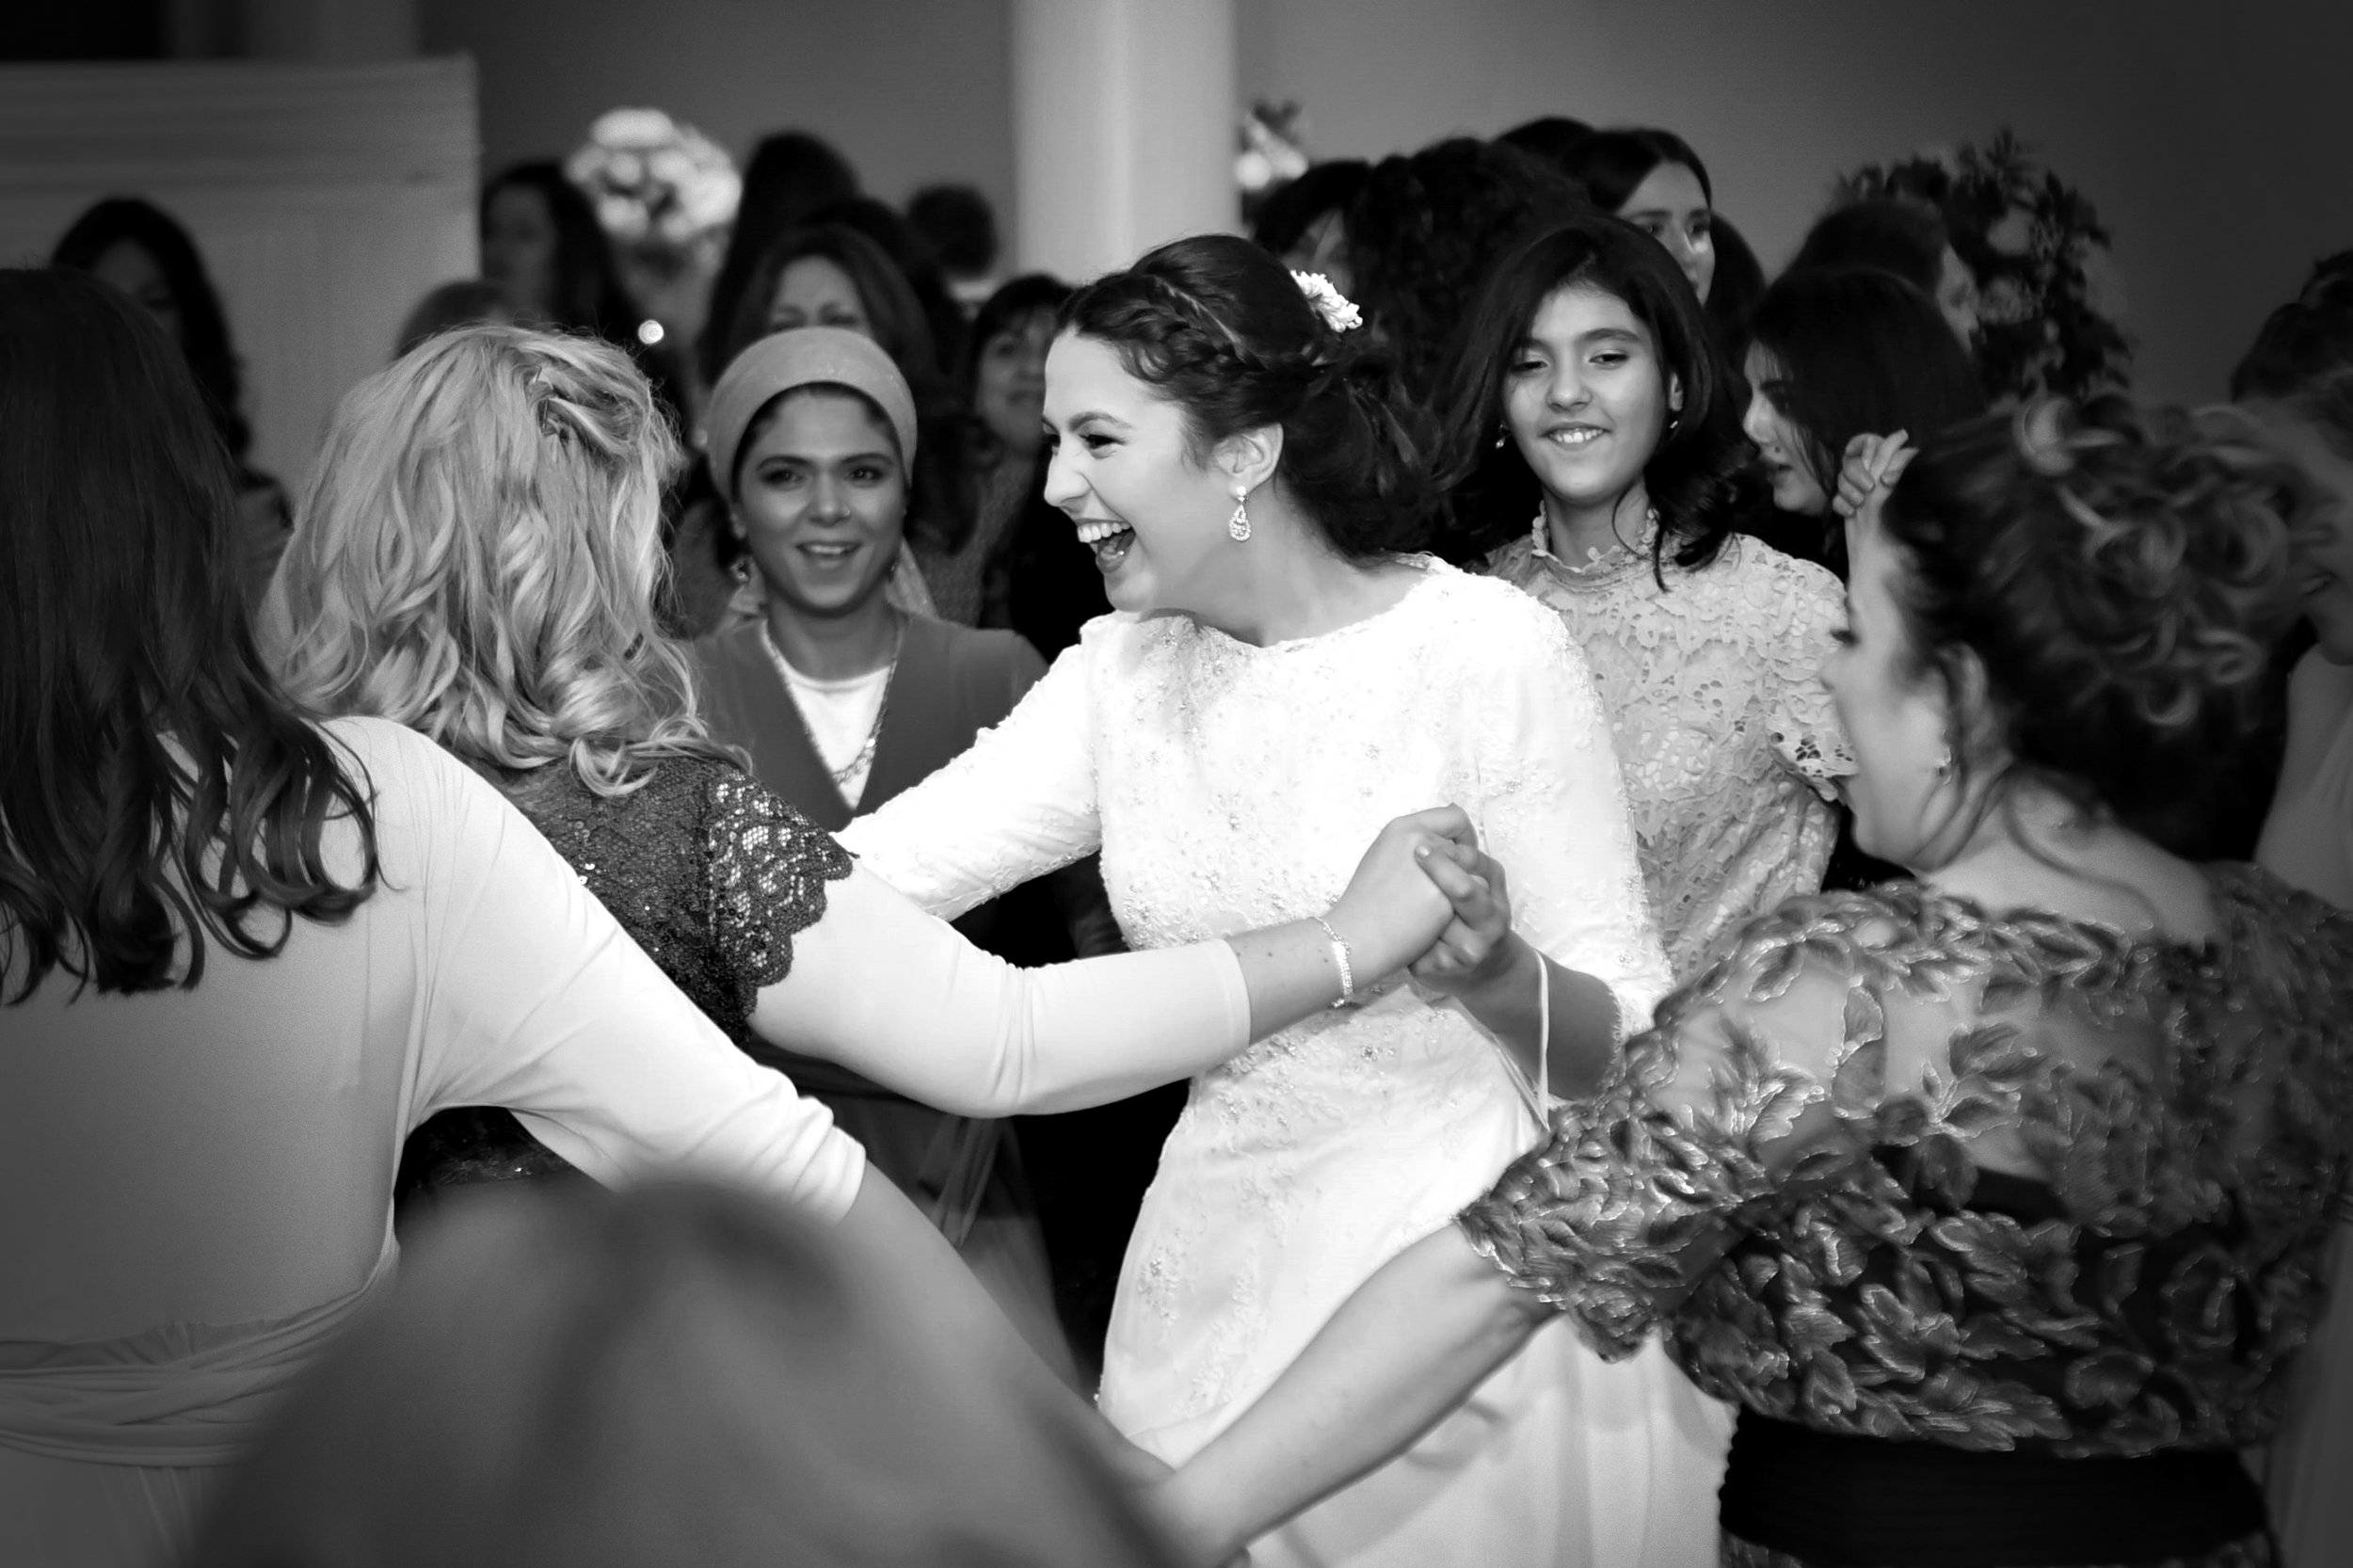 Chava, the bride, dancing with friends and family.